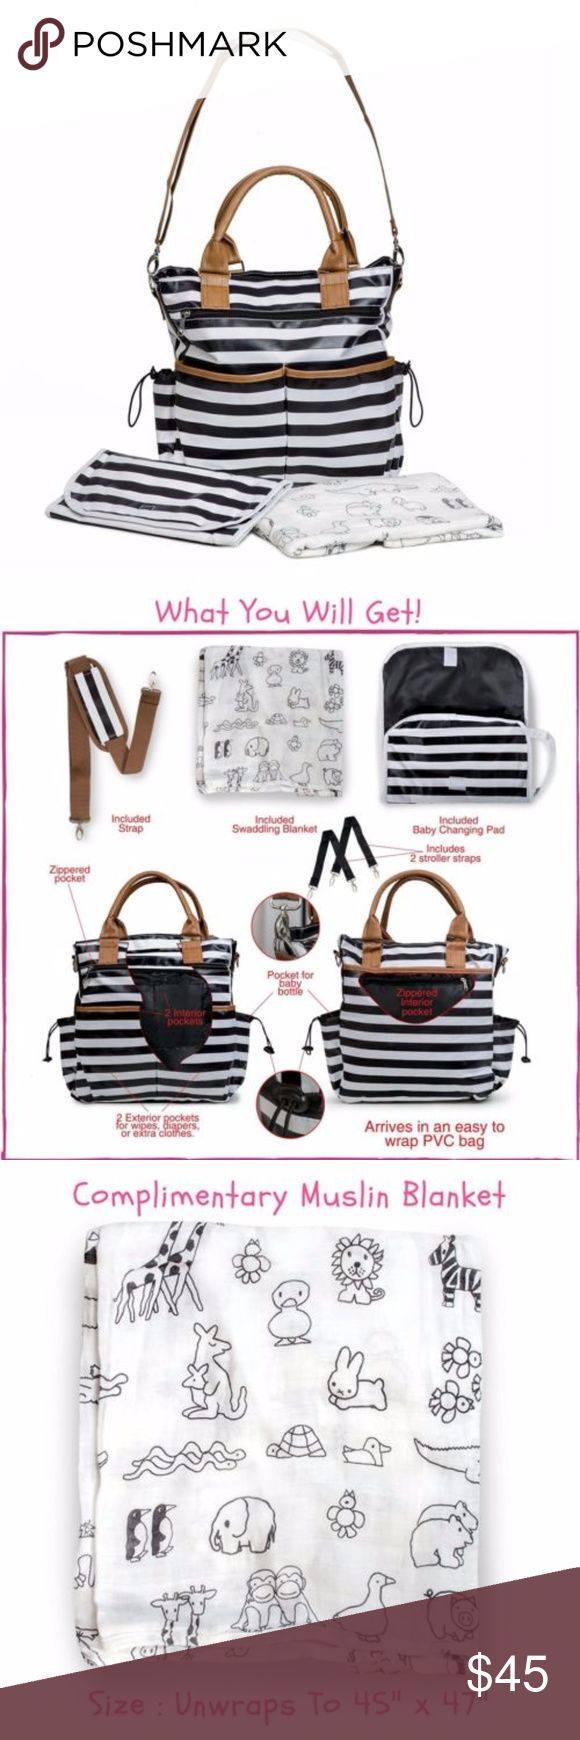 Baby Striped Diaper Bag Tote with Changing Pad Our diaper bag is reliably WATERPROOF and EASY TO CLEAN It is generously sized, with 1 main big zippered compartment, as well as 10 pockets of various shapes and sizes, 5 external and 5 internal. All the space you need for the changing pad, the baby's milk bottles, the diapers and your essentials. Get A Stunning BONUS! Adding TREMENDOUS VALUE to your pack, we are offering you 1 quality-made, soft, breathable SWADDLING WRAP in GENDER-FREE black…